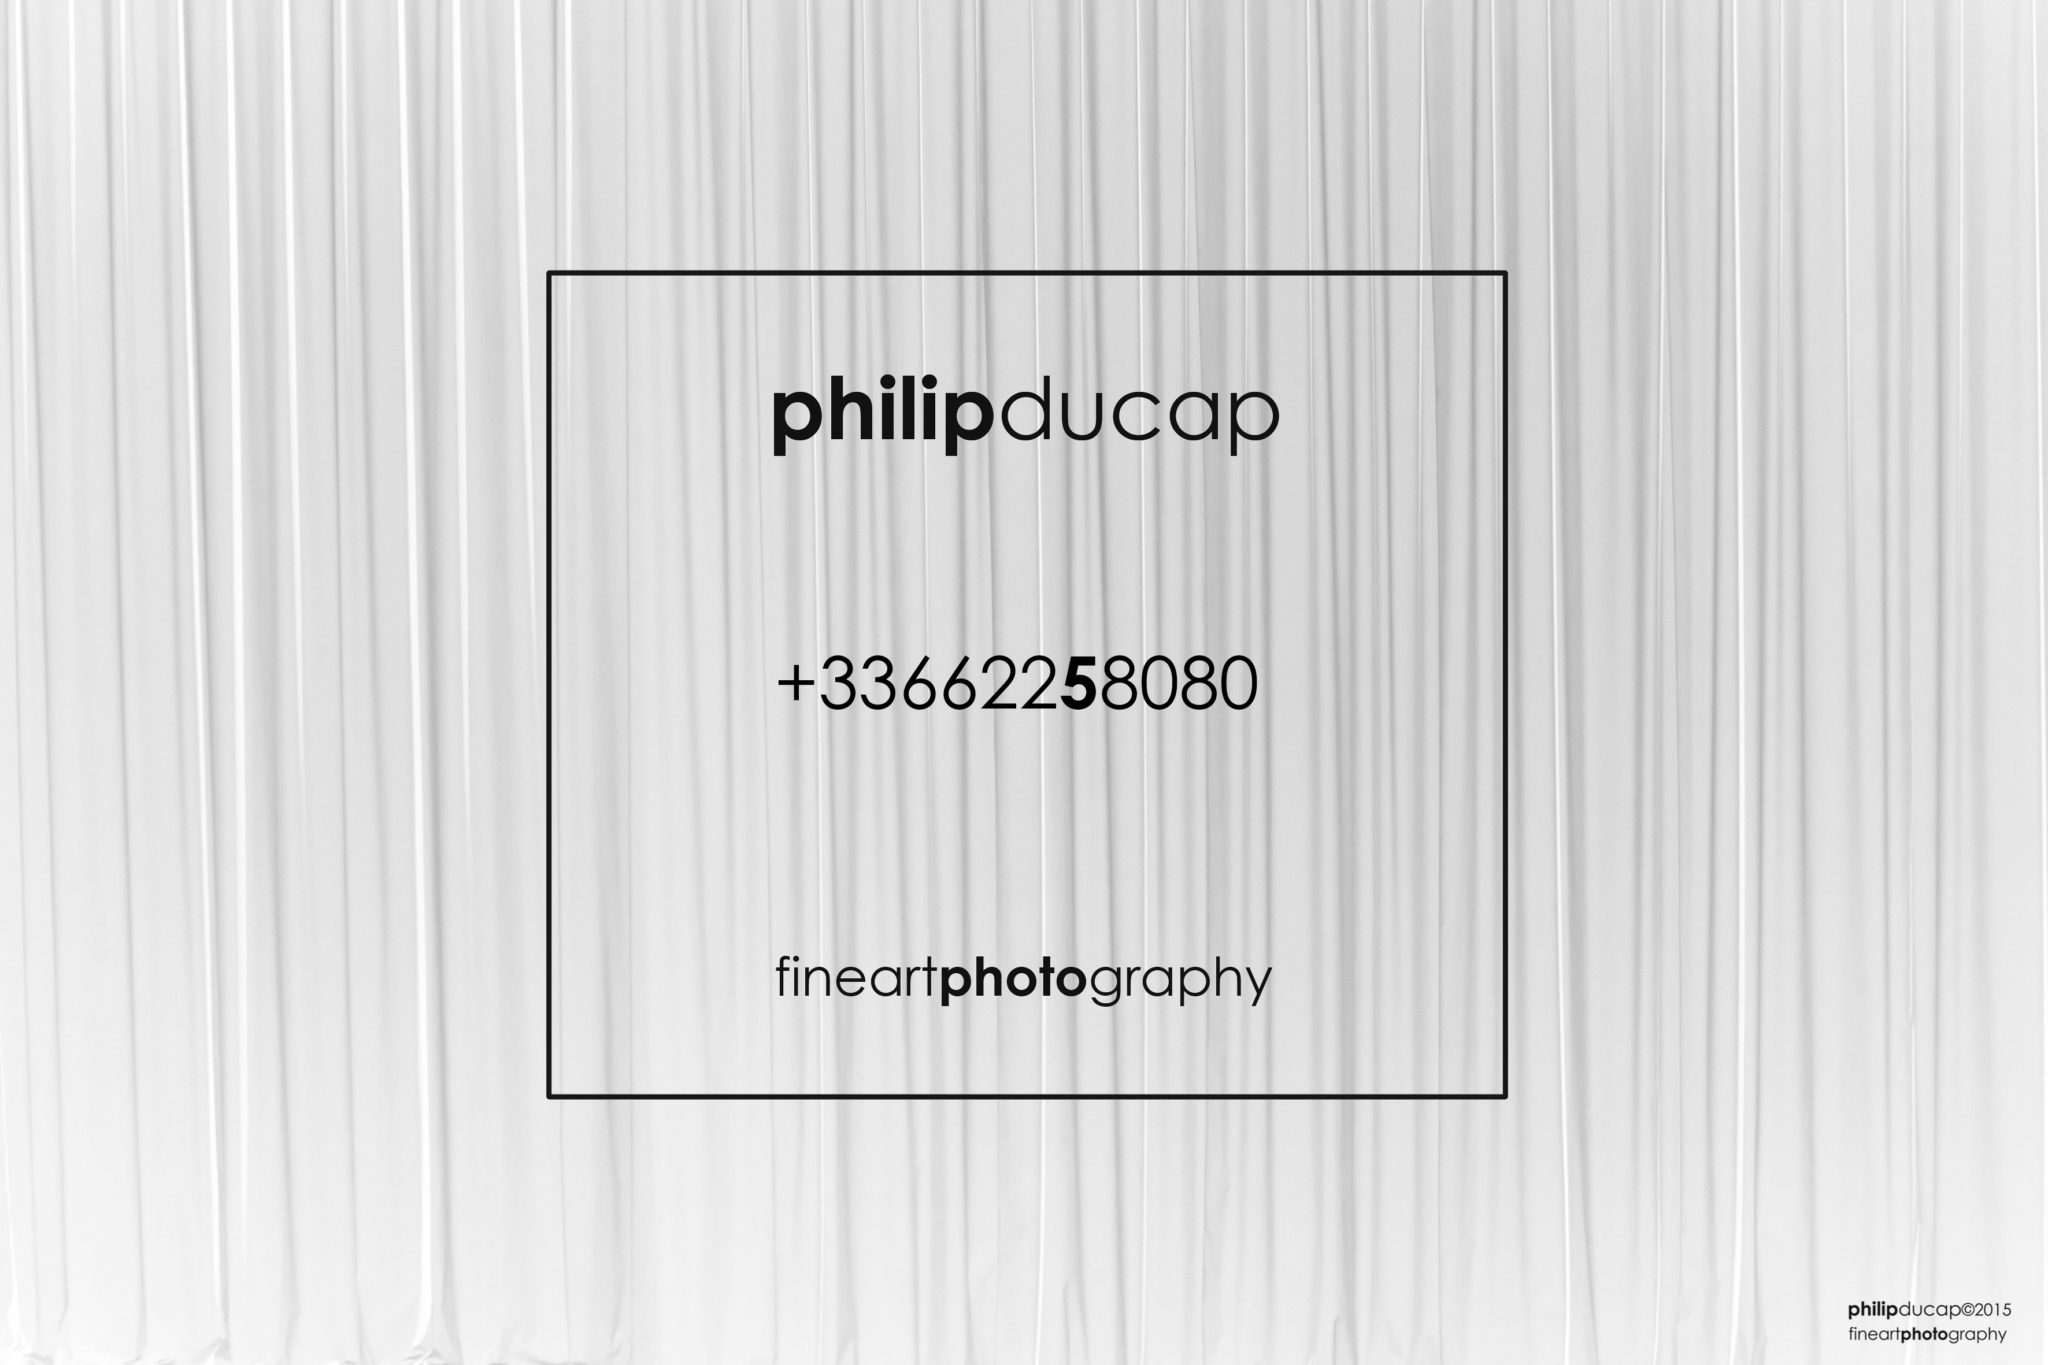 000 PhD_Logo_RIDEAU_WebSite_Tel_PolaHD_BW_RED